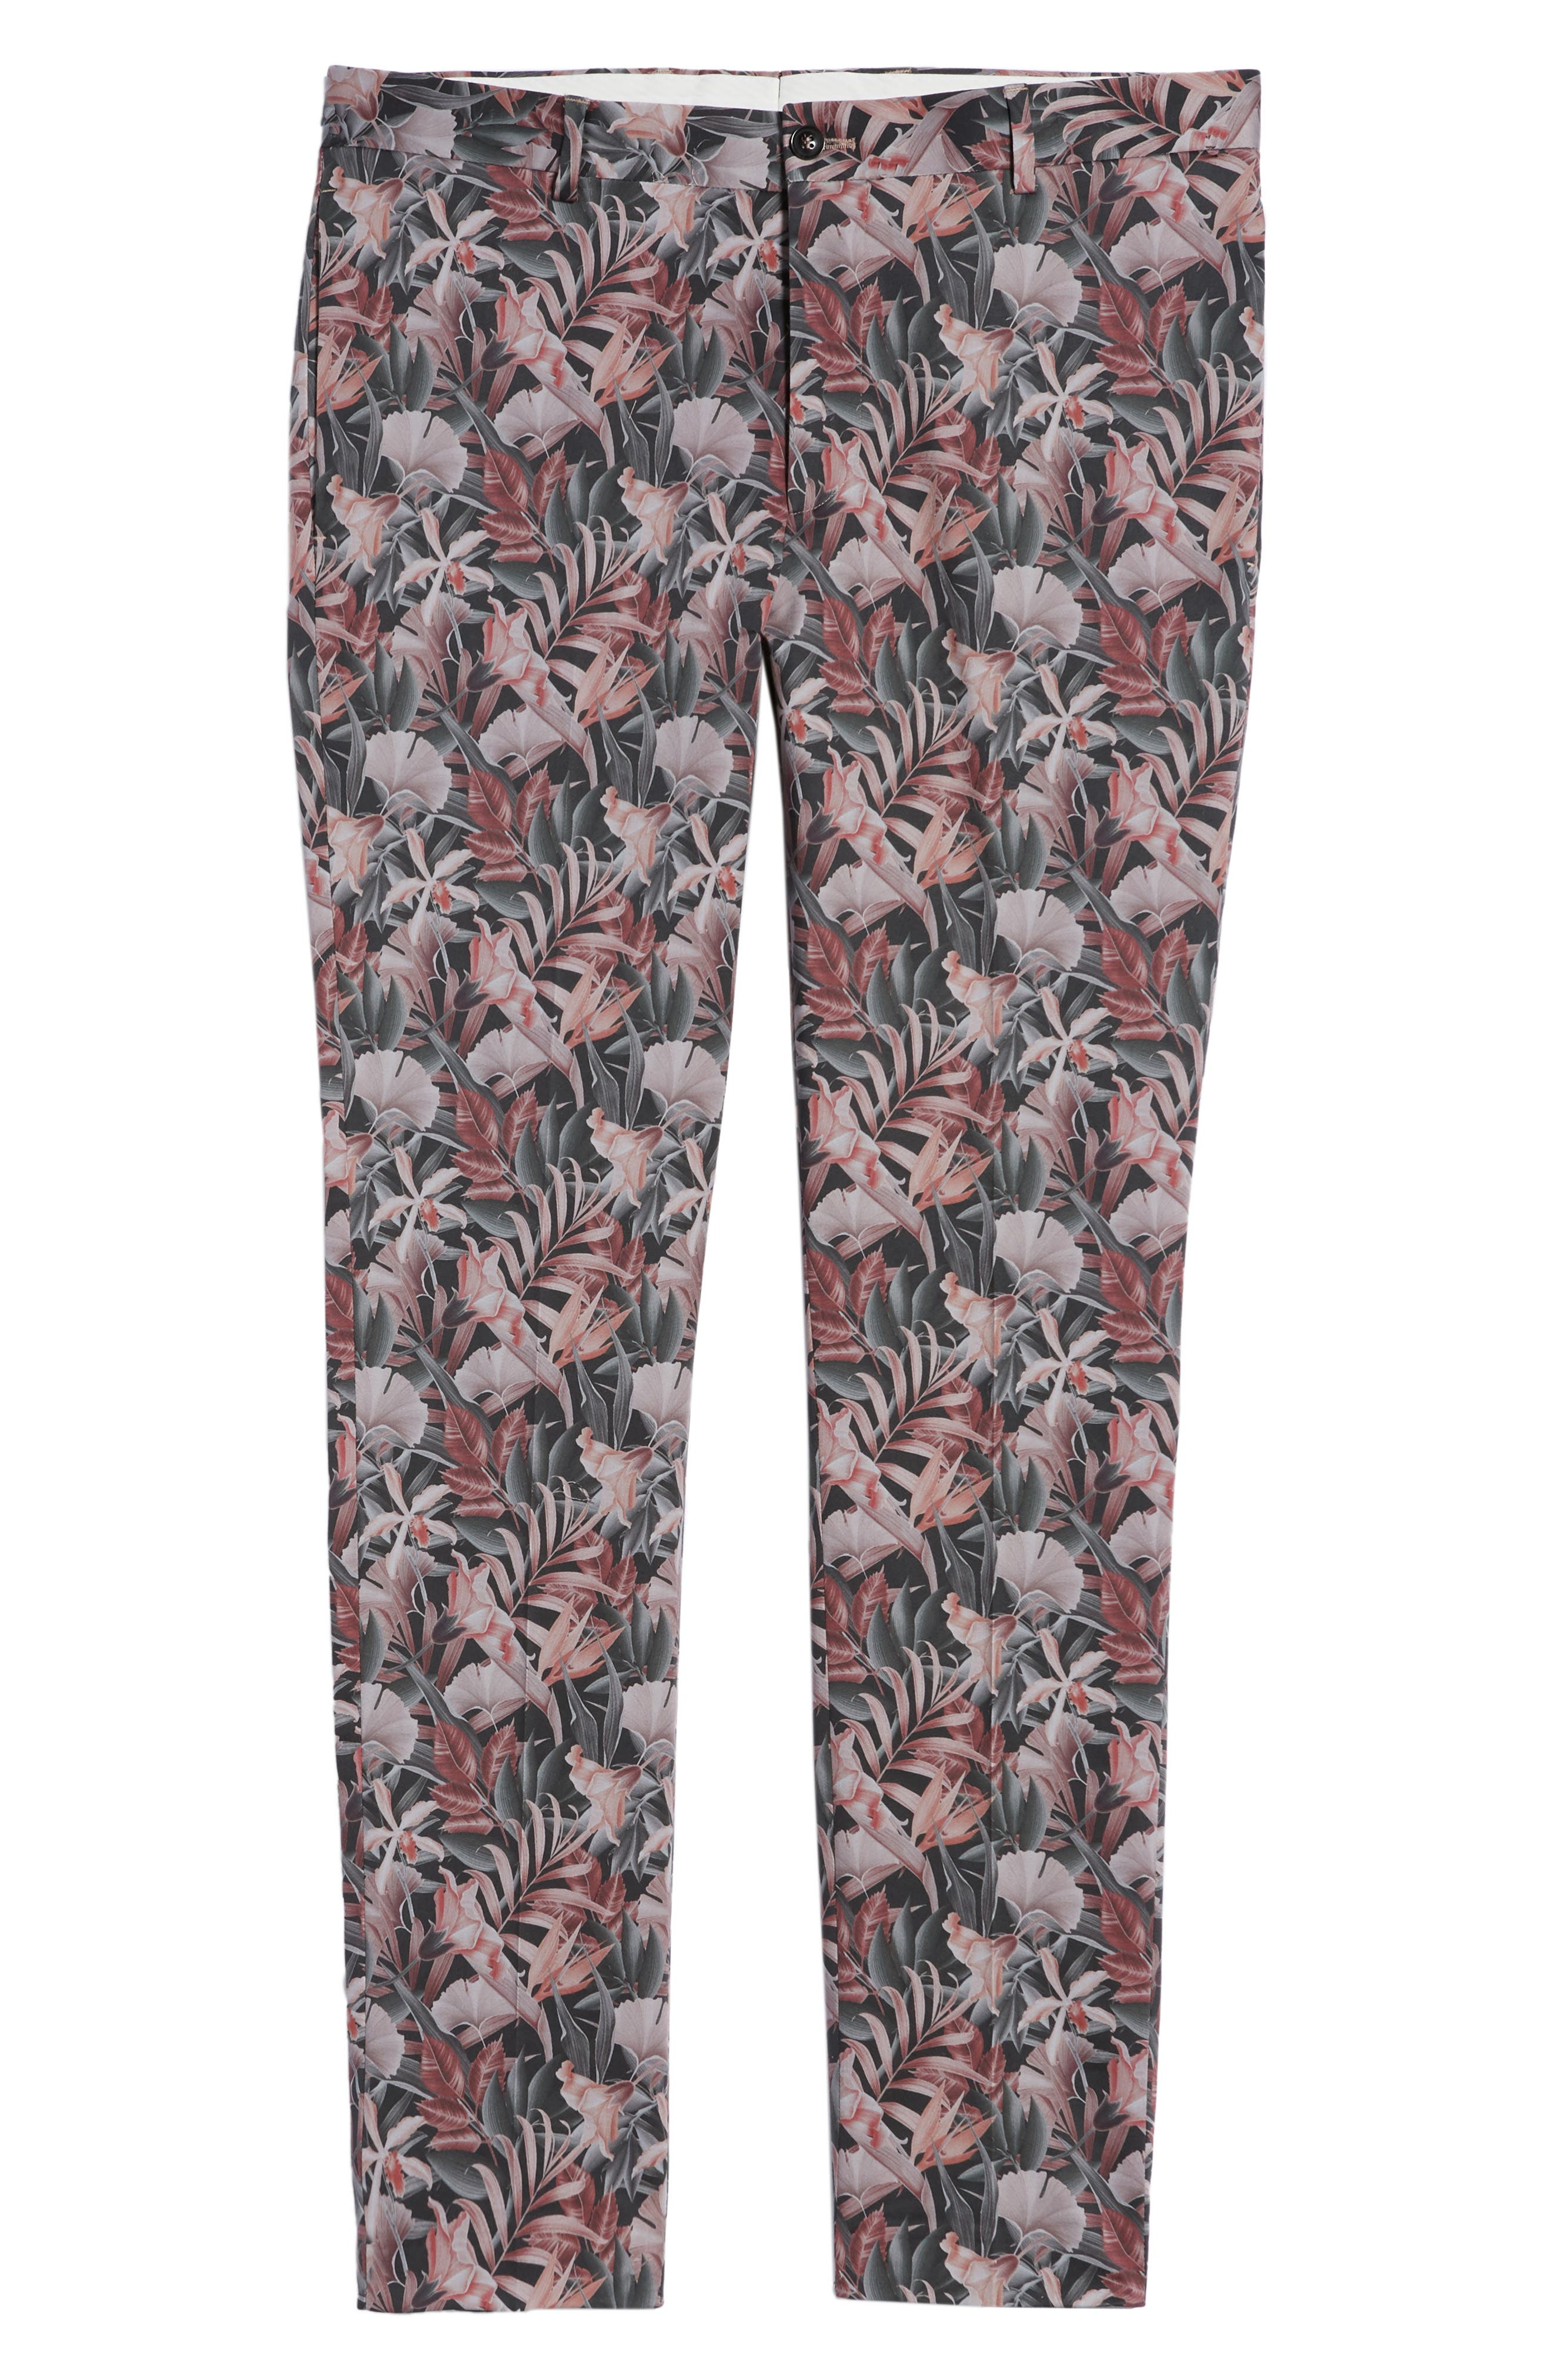 Ultra Skinny Fit Hibiscus Print Suit Trousers,                             Alternate thumbnail 6, color,                             650